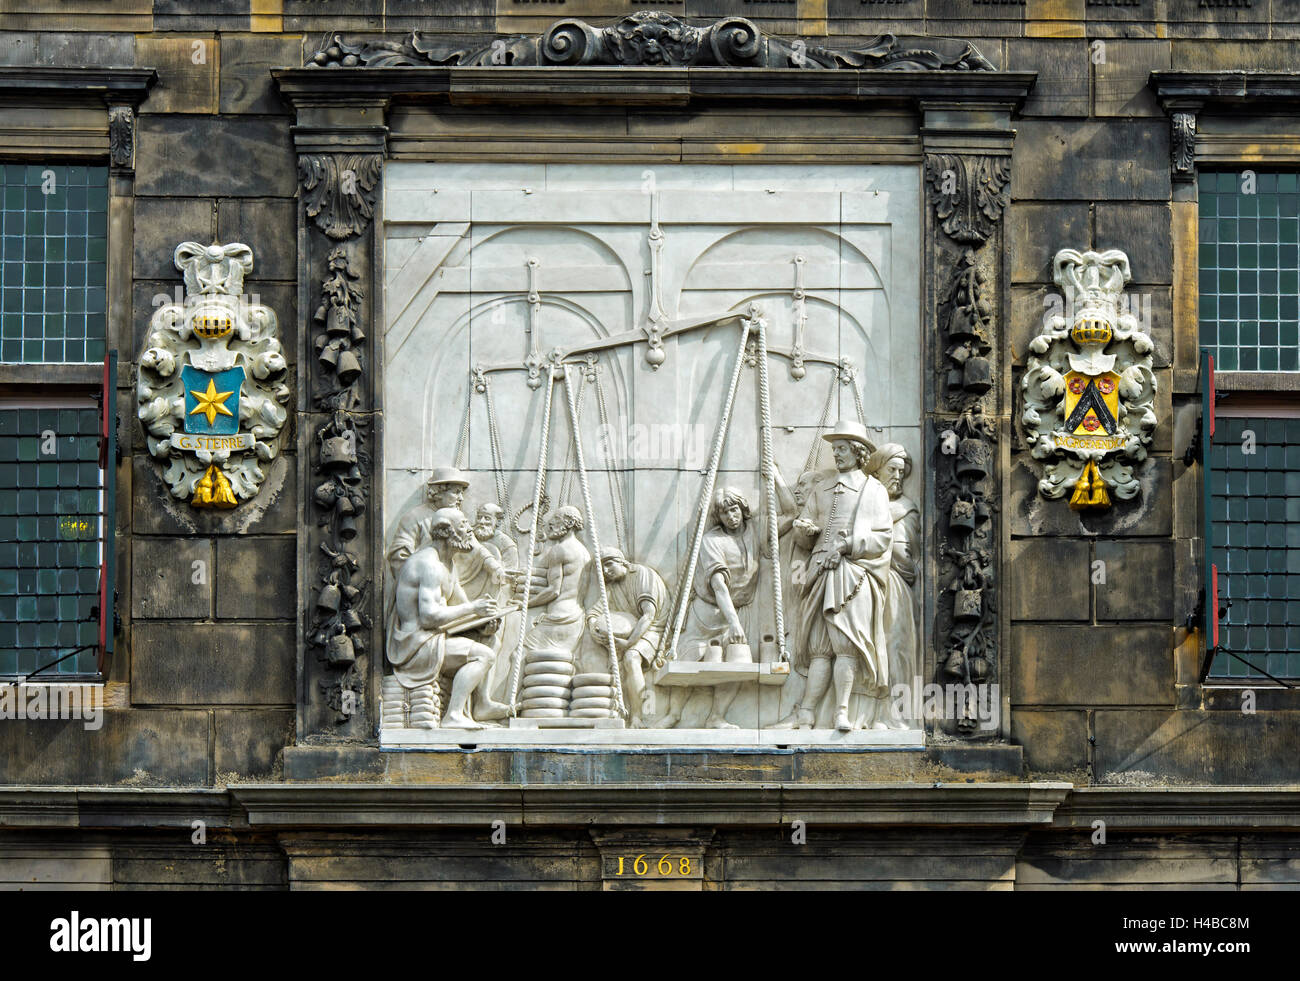 Waaghaus relief depicting weighing of cheese in ancient times, Goudse Waag, Gouda, The Netherlands - Stock Image